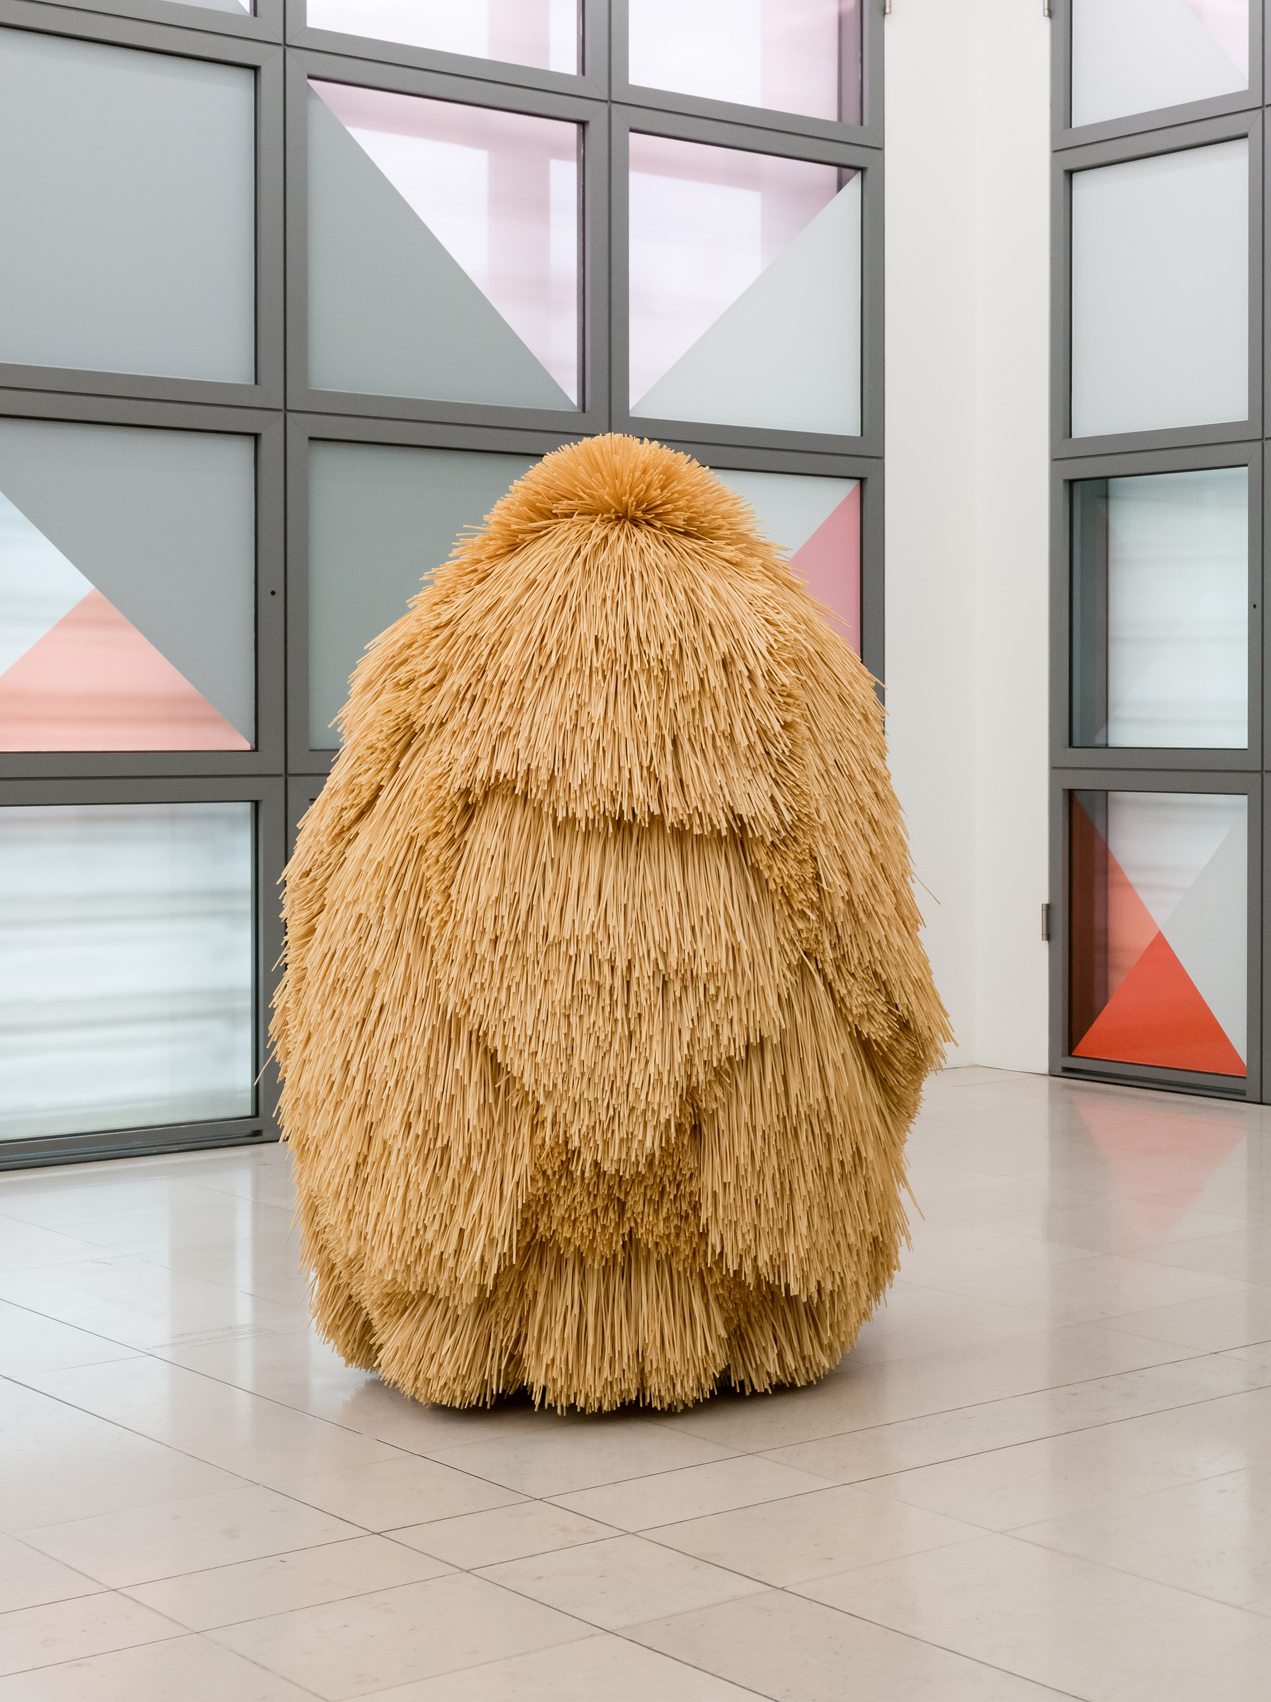 Haegue Yang (*1971): The Intermediate – Hairy All Over, 2016 Erworben 2016 © Hamburger Kunsthalle, Dauerleihgabe der Stiftung für die Hamburger Kunstsammlungen, Foto: Kay Riechers